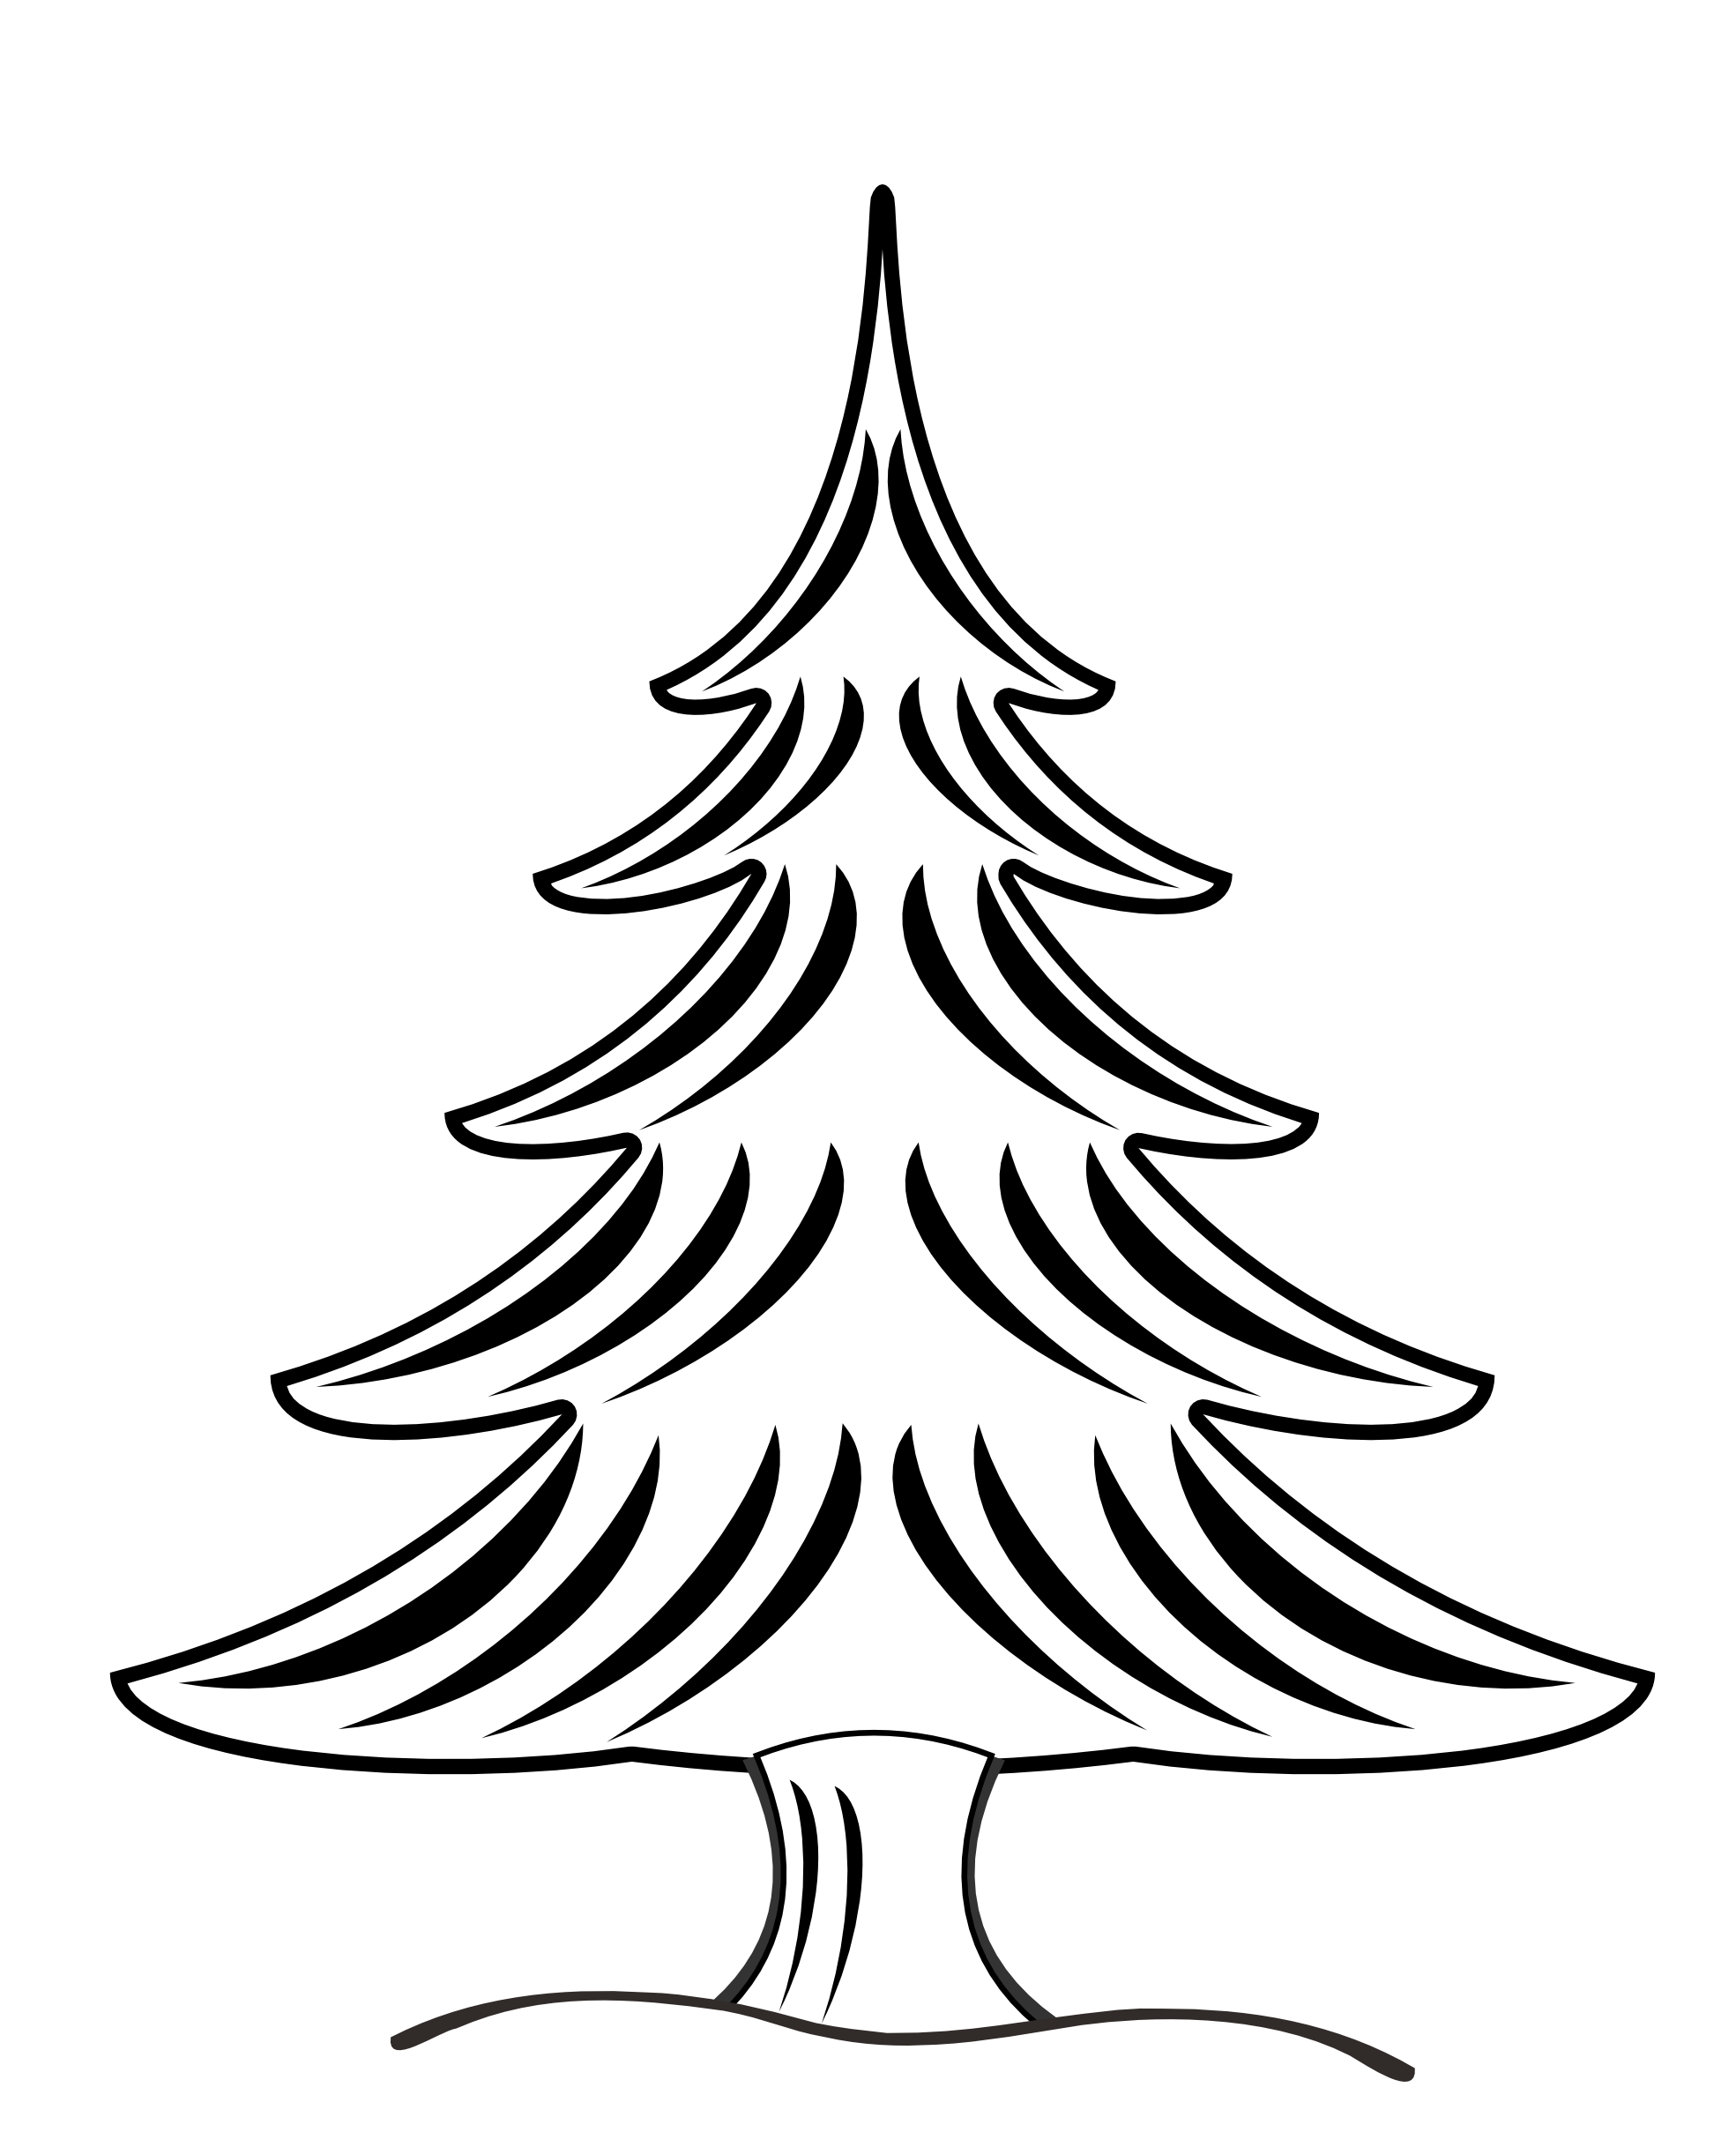 banner free download Line art tree download. Snowflake clipart black and white free